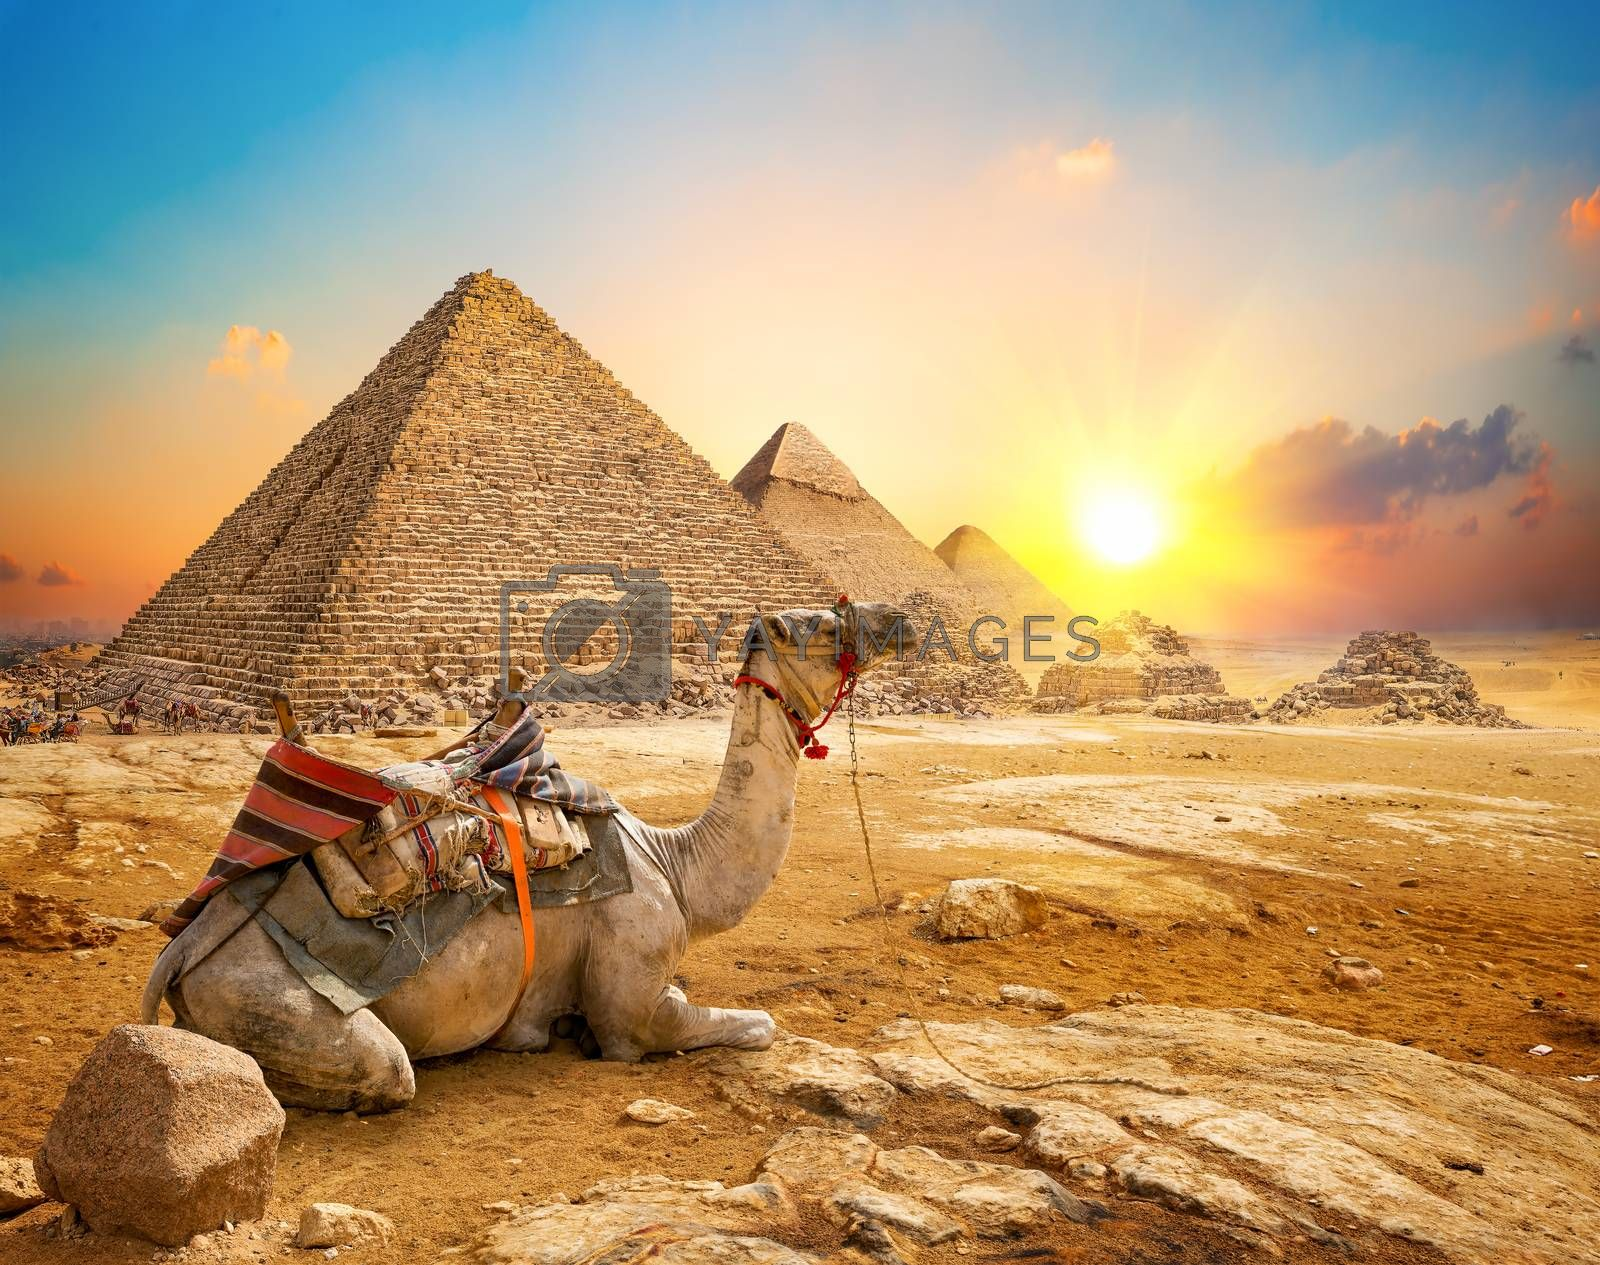 Camel and pyramids by Givaga